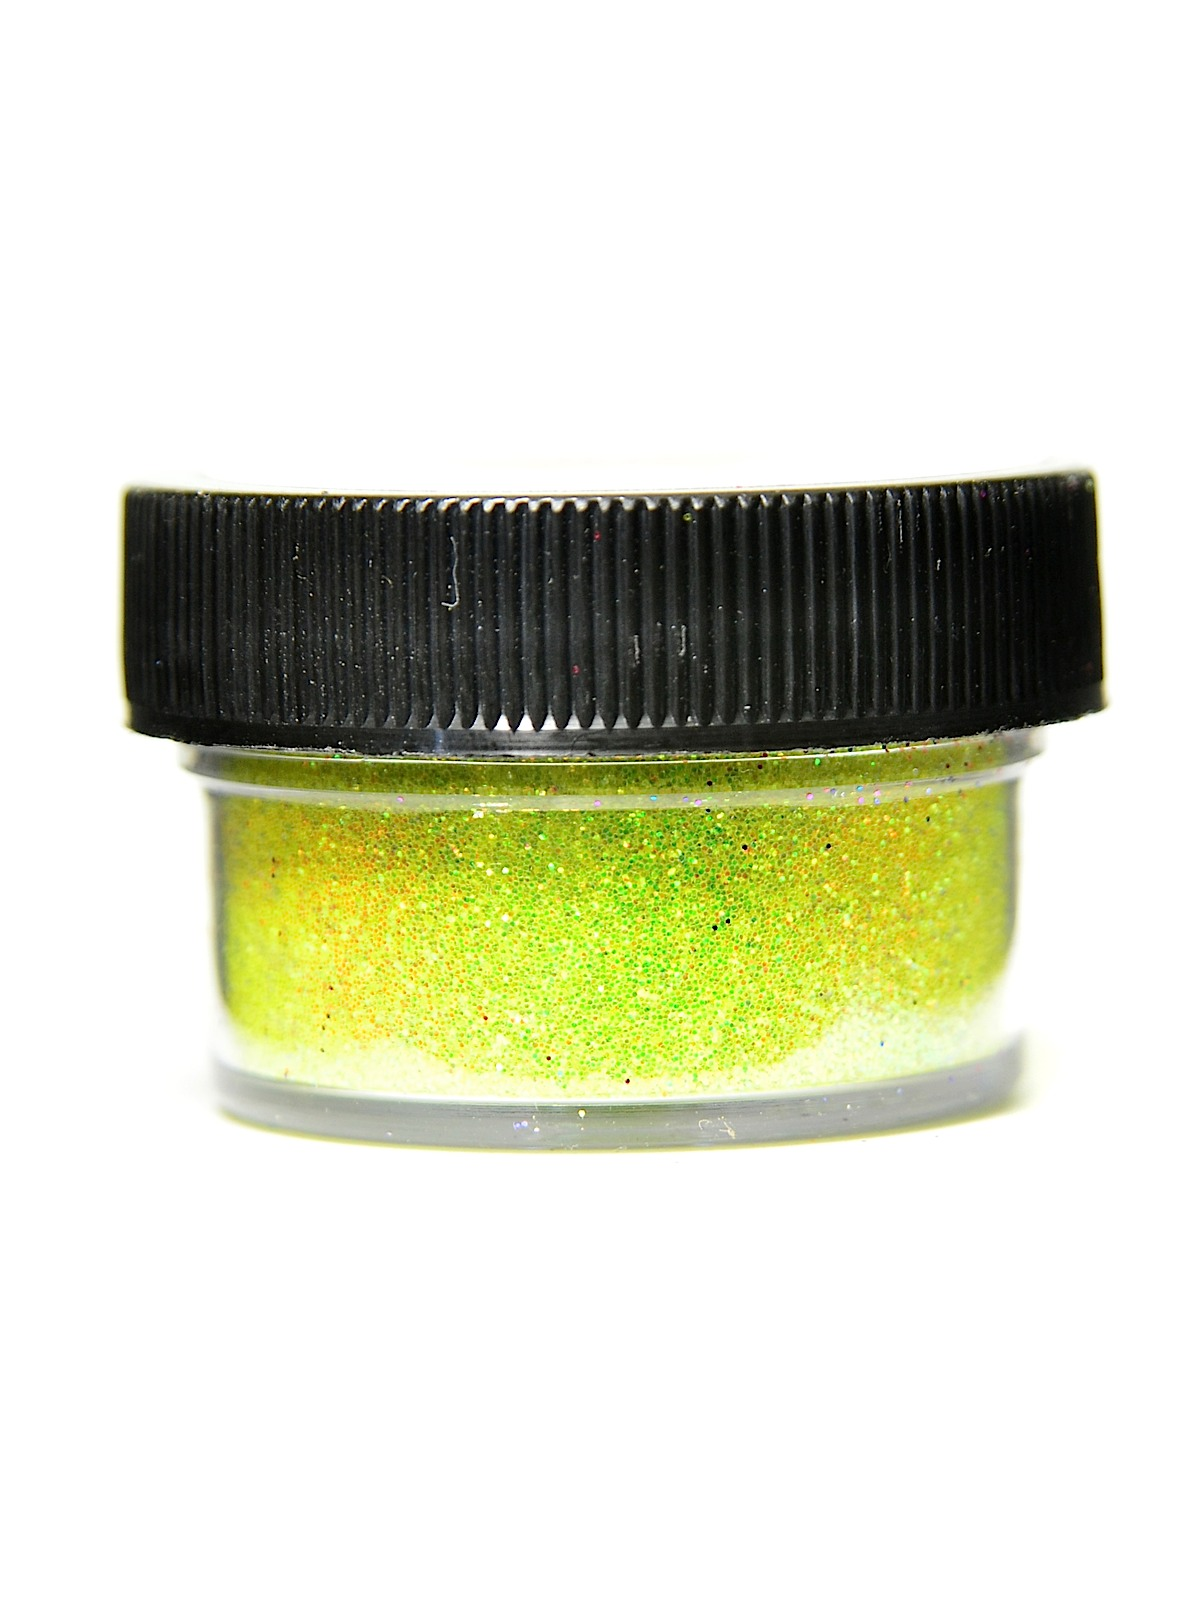 Ultrafine Transparent Glitter Chrysalis 1 2 Oz. Jar